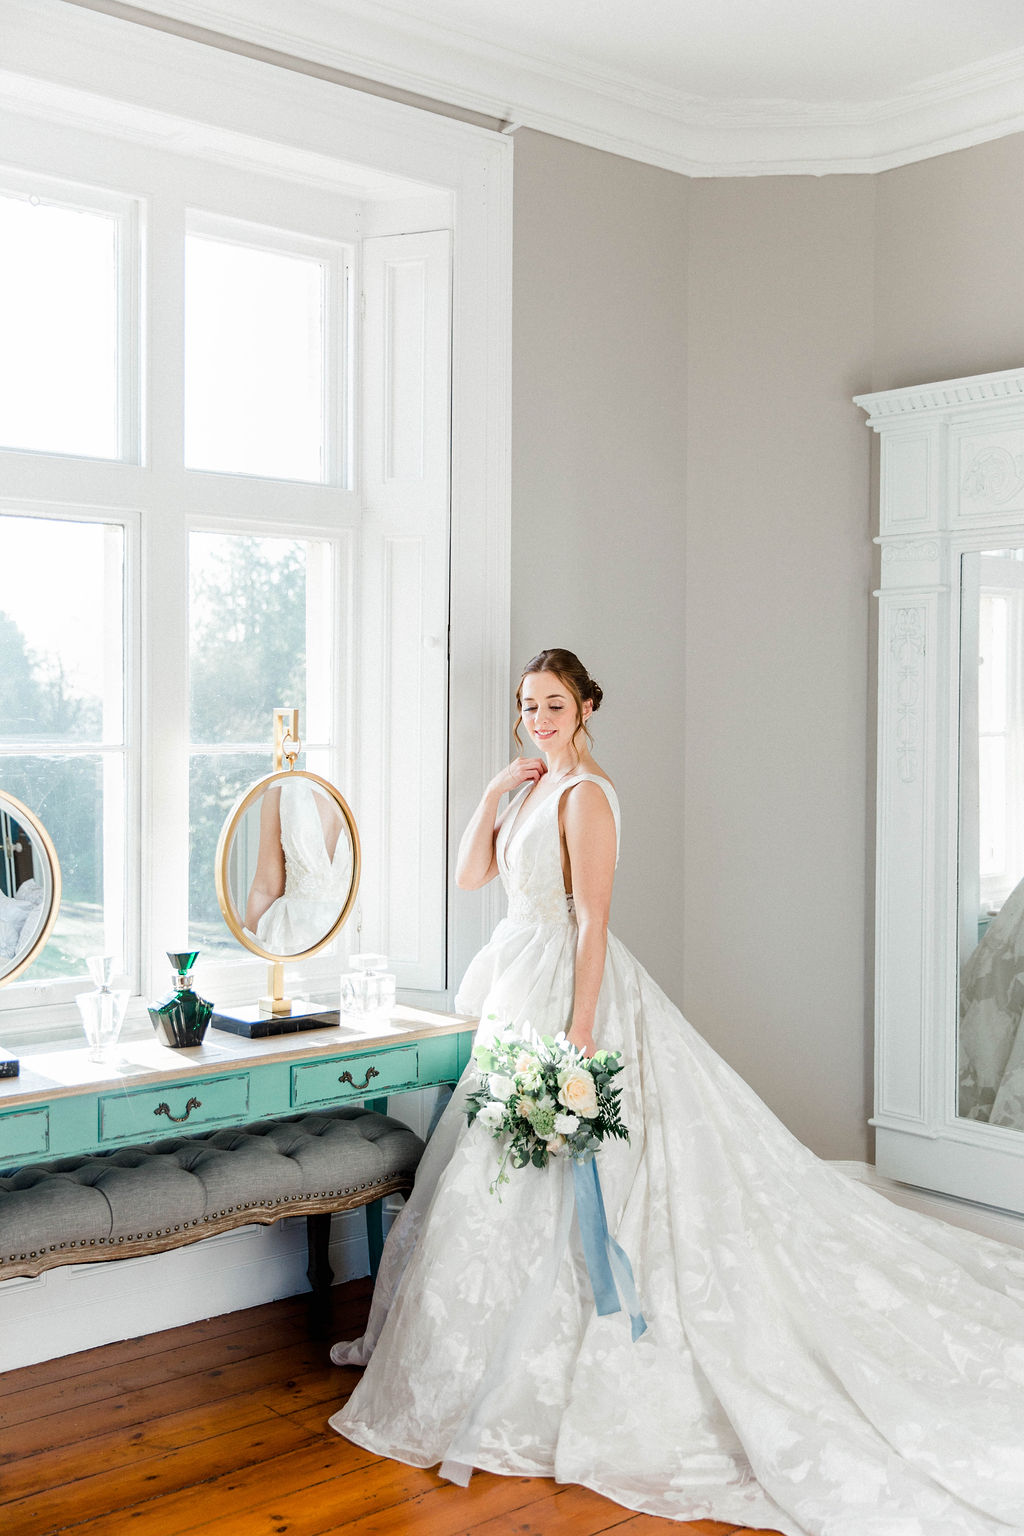 bride getting ready in the bridal suite